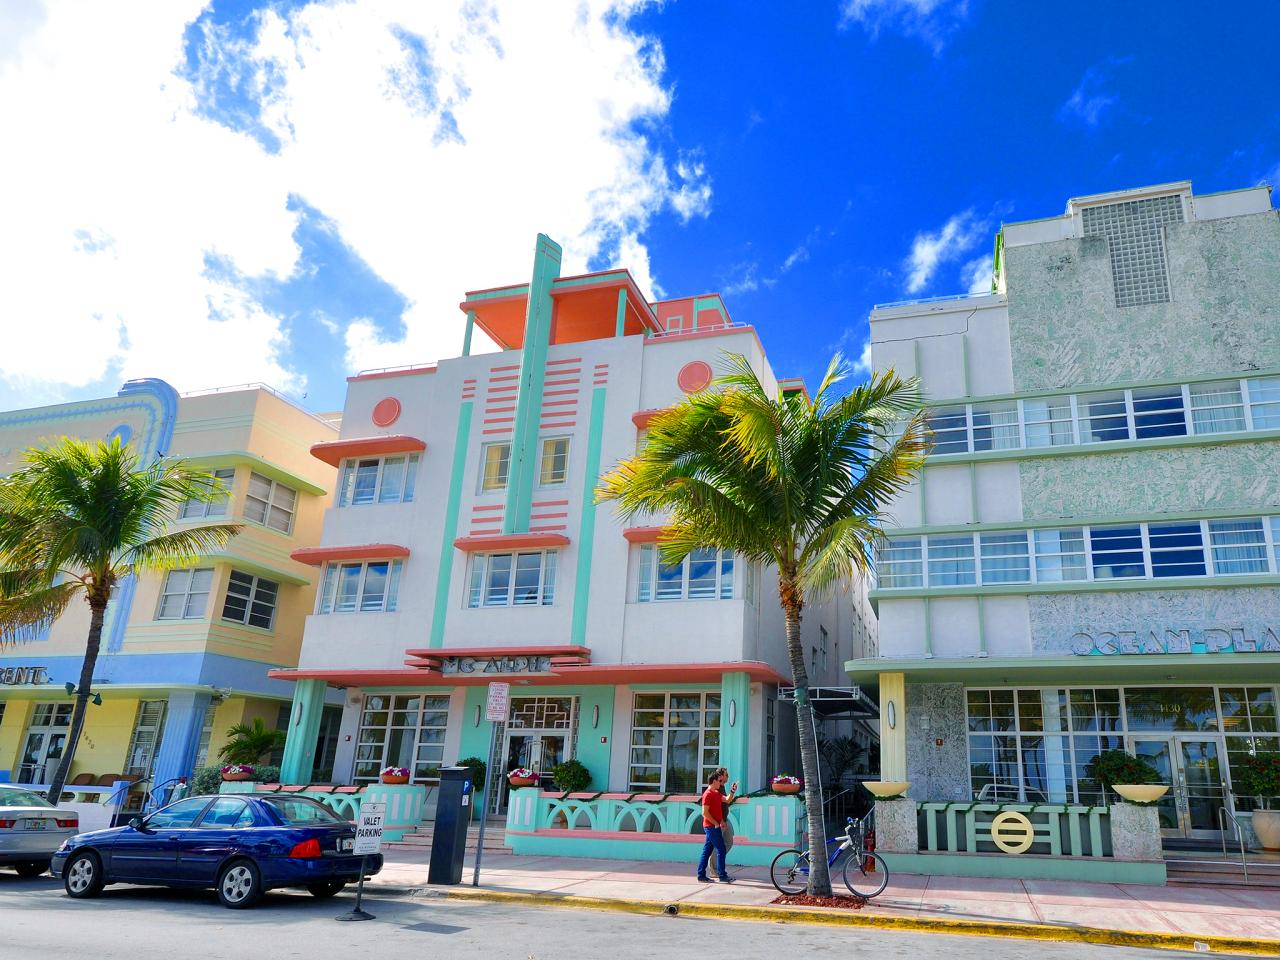 Thanks In Large Part To The 80s Television Clic Miami Vice If One Visual Were Define South Beach It S Pastel Colored Art Deco Architecture